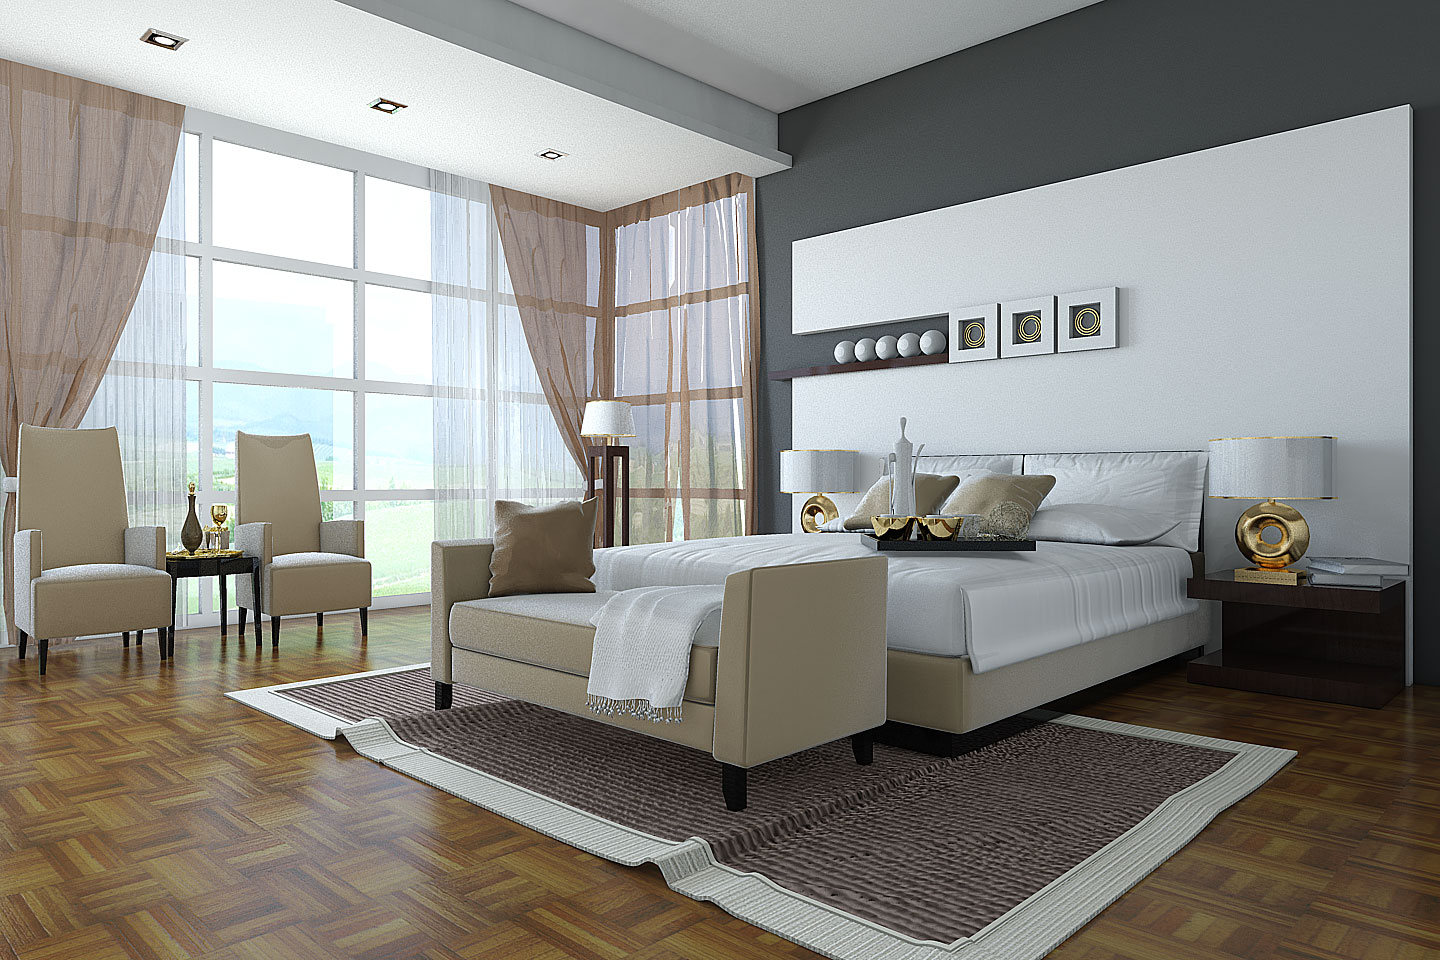 Design A Bedroom Bedroom Design Gallery For Inspiration